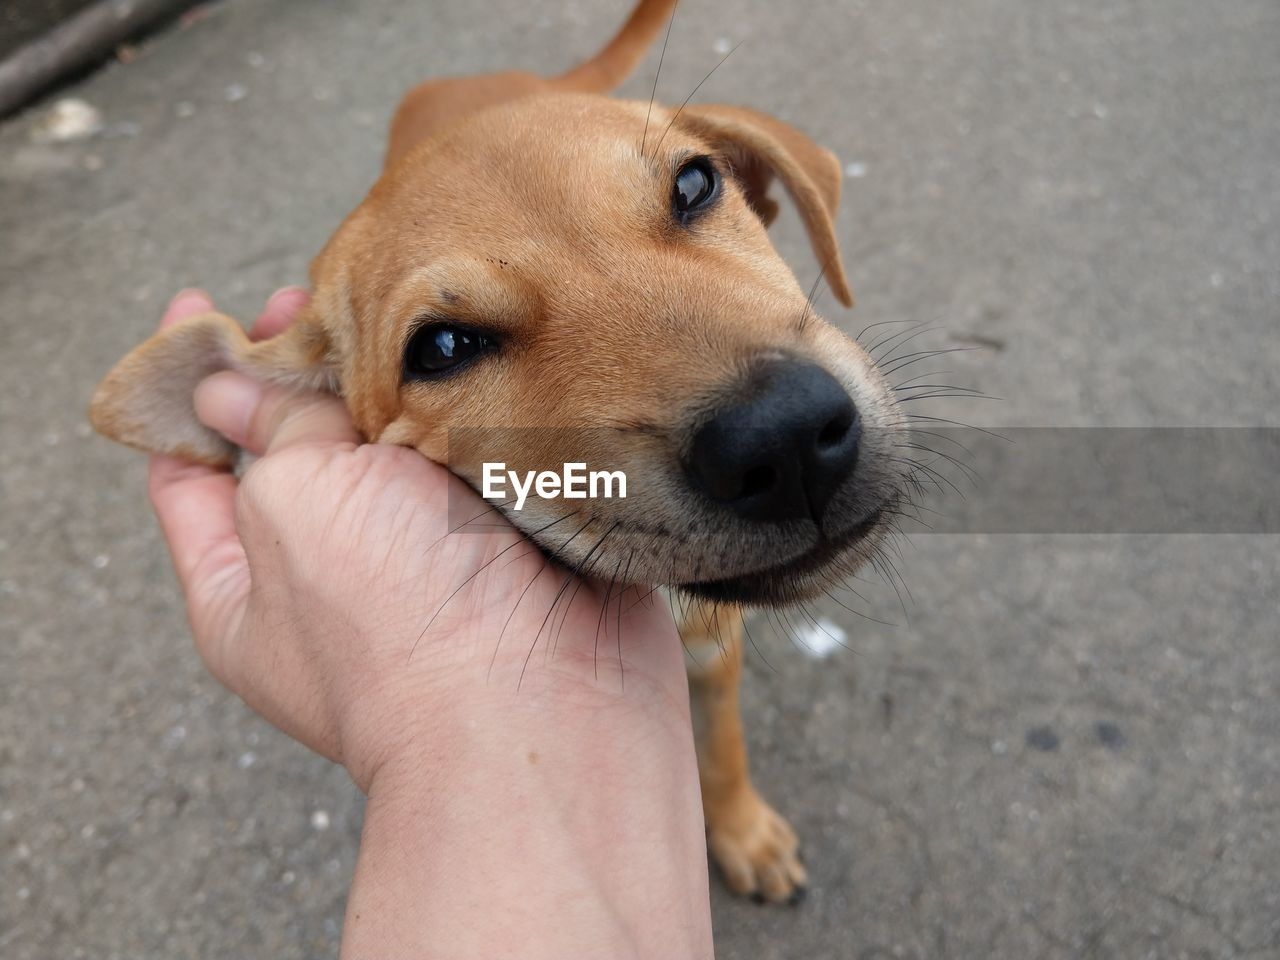 one animal, domestic, dog, canine, human hand, pets, hand, mammal, domestic animals, human body part, real people, vertebrate, one person, personal perspective, unrecognizable person, high angle view, holding, finger, pet owner, human limb